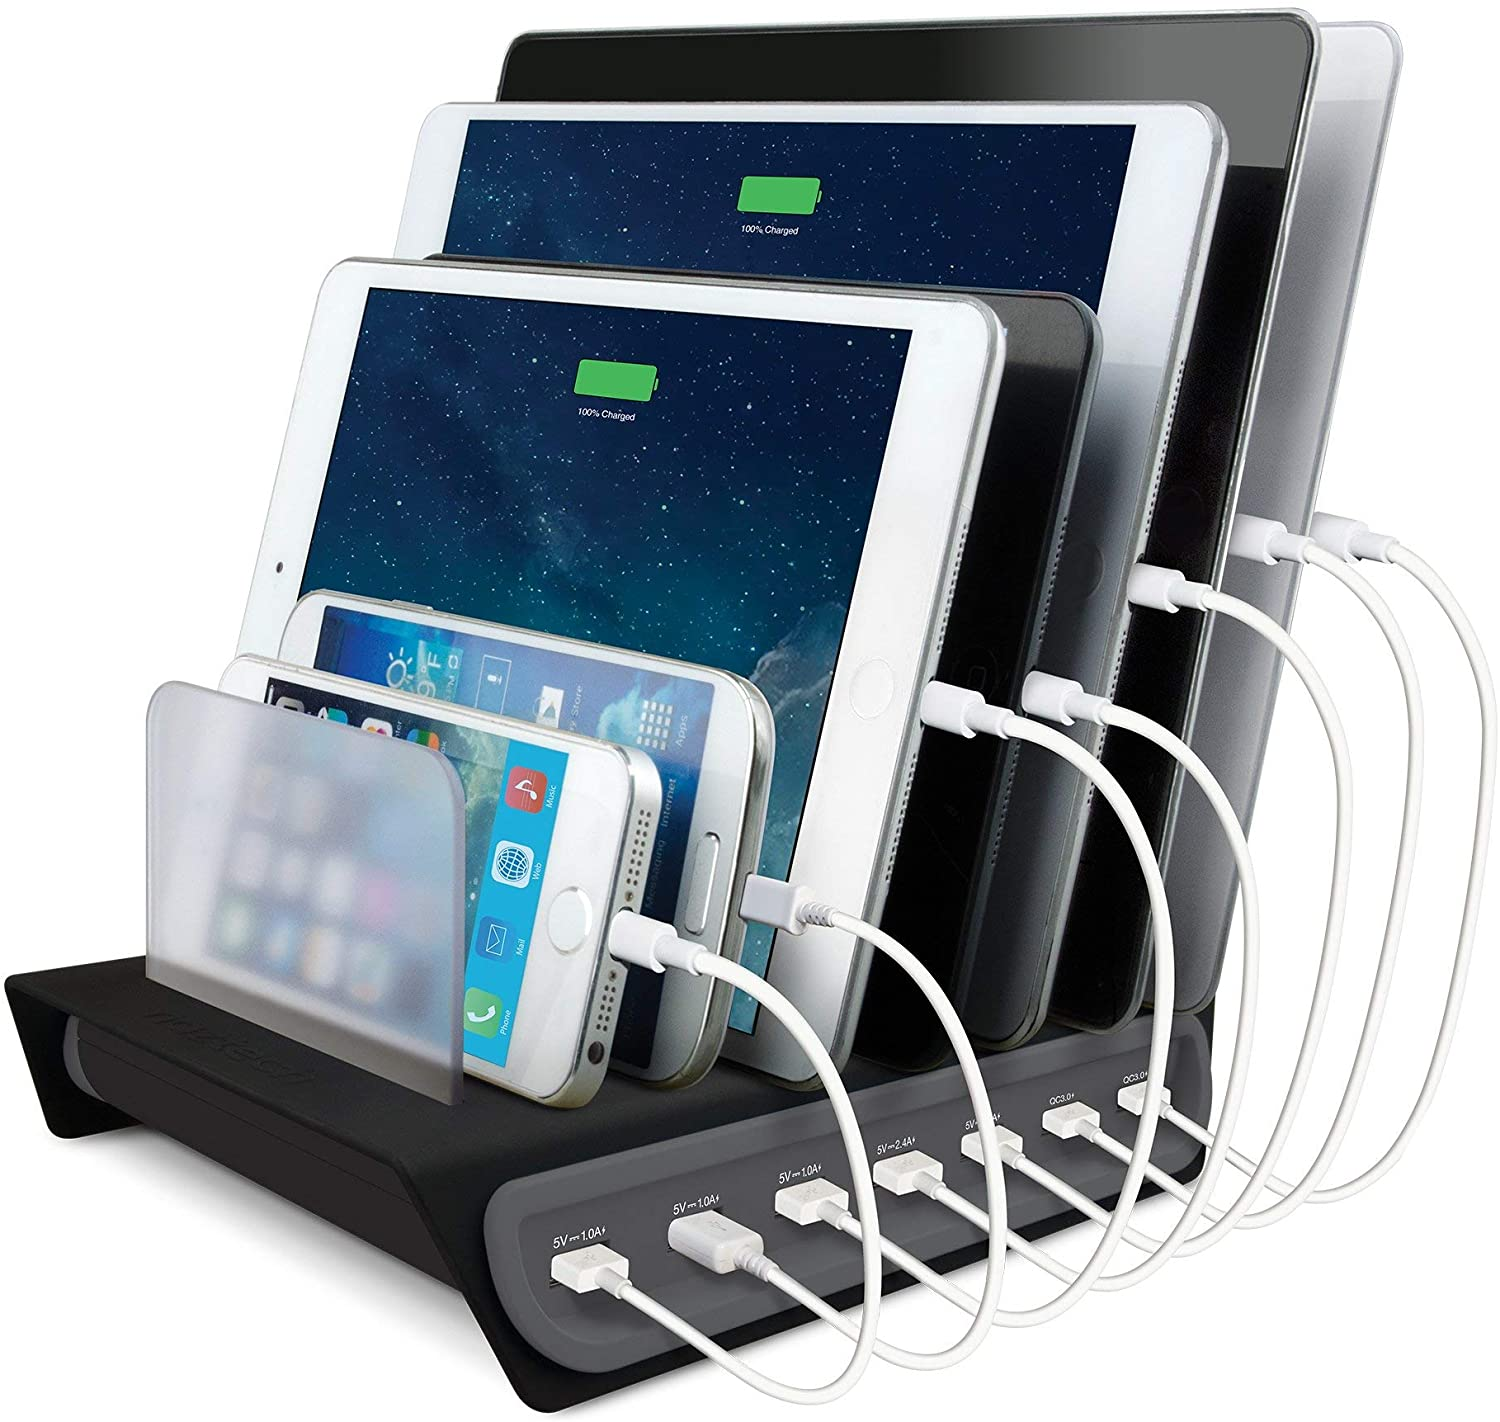 Naztech Power Hub 7 High-Speed Charging Station for Multiple Devices Charge 7 Devices Simultaneously Compatible with iPhone, Samsung, Tablets/iPads + More